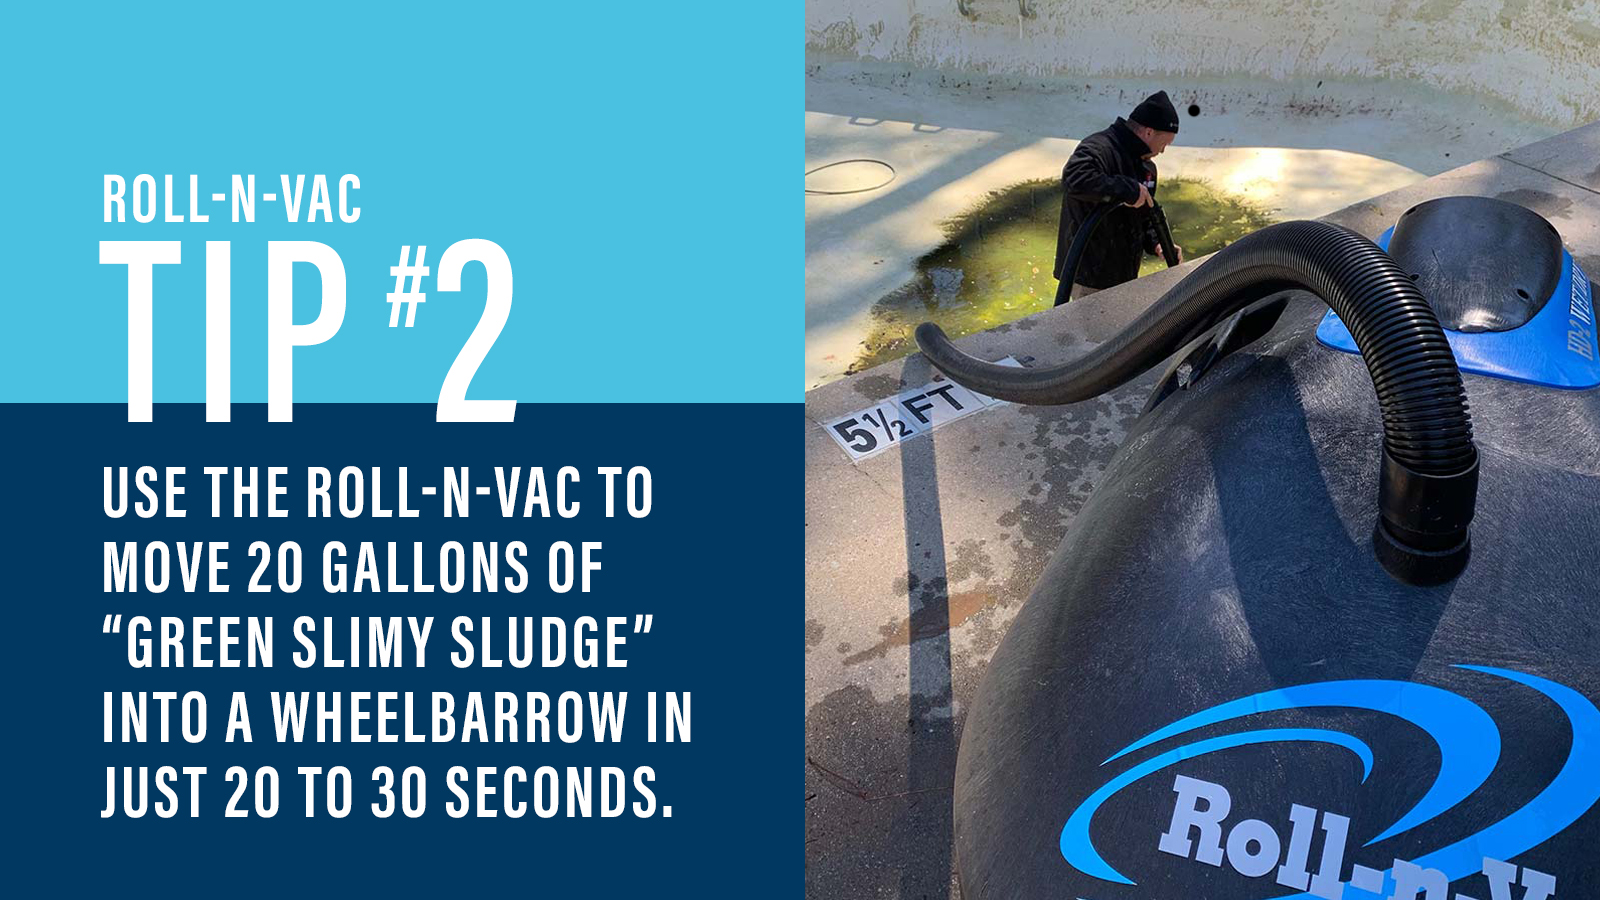 """Roll-n-vac Tip #2 Use the Roll-n-Vac to move 20 Gallons of """"Green Slimy Sludge"""" into a wheelbarrow in just 20 to 30 seconds"""